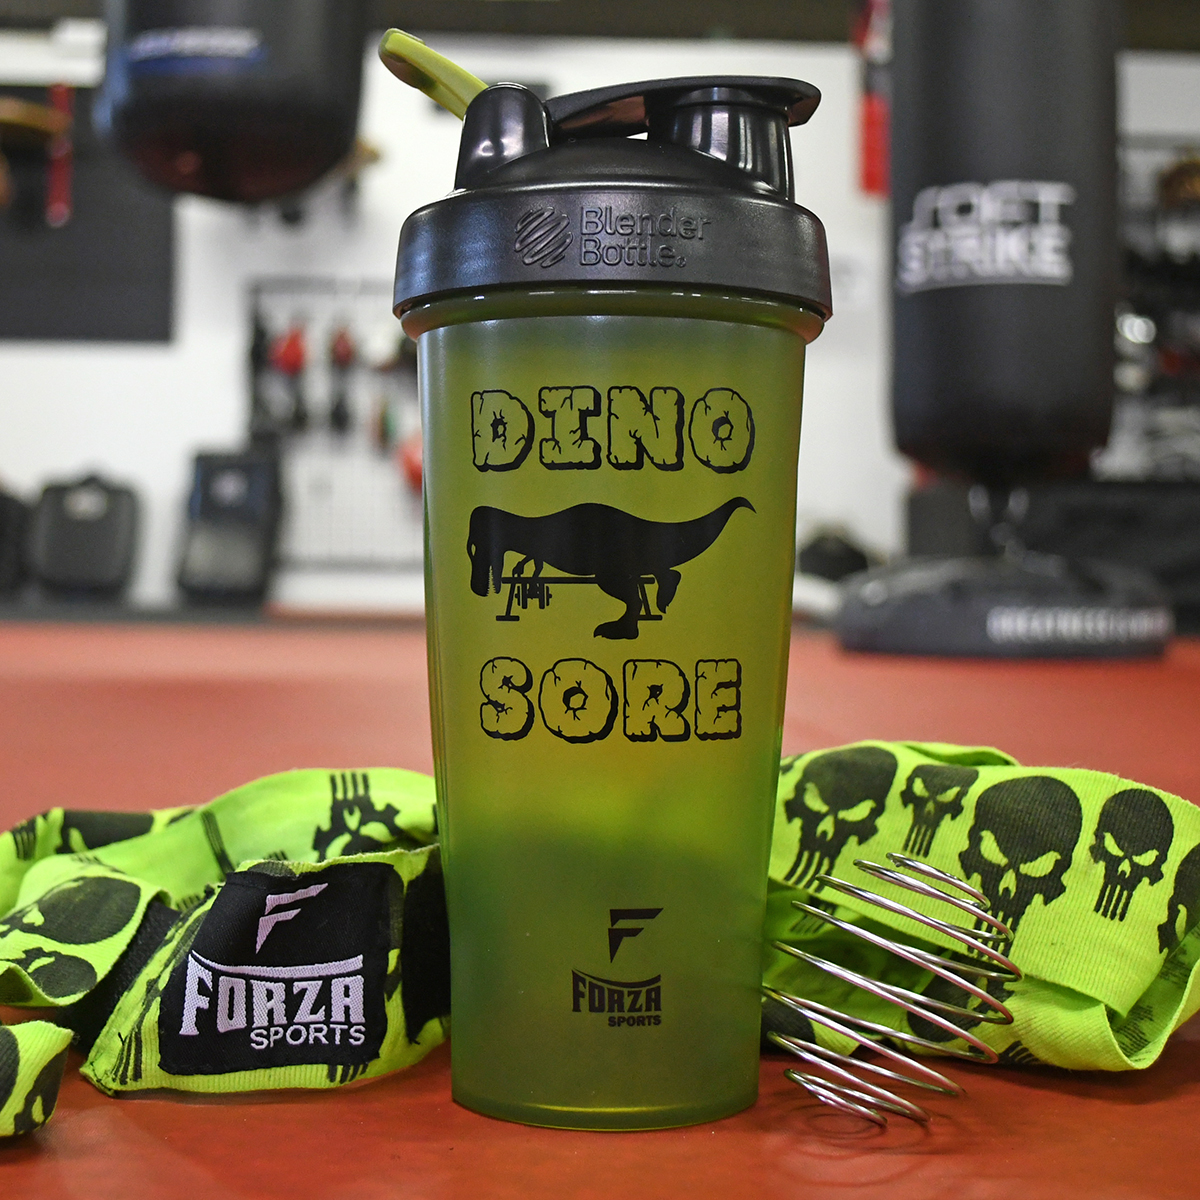 Blender-Bottle-x-Forza-Sports-Classic-28-oz-Shaker-Mixer-Cup-with-Loop-Top thumbnail 15